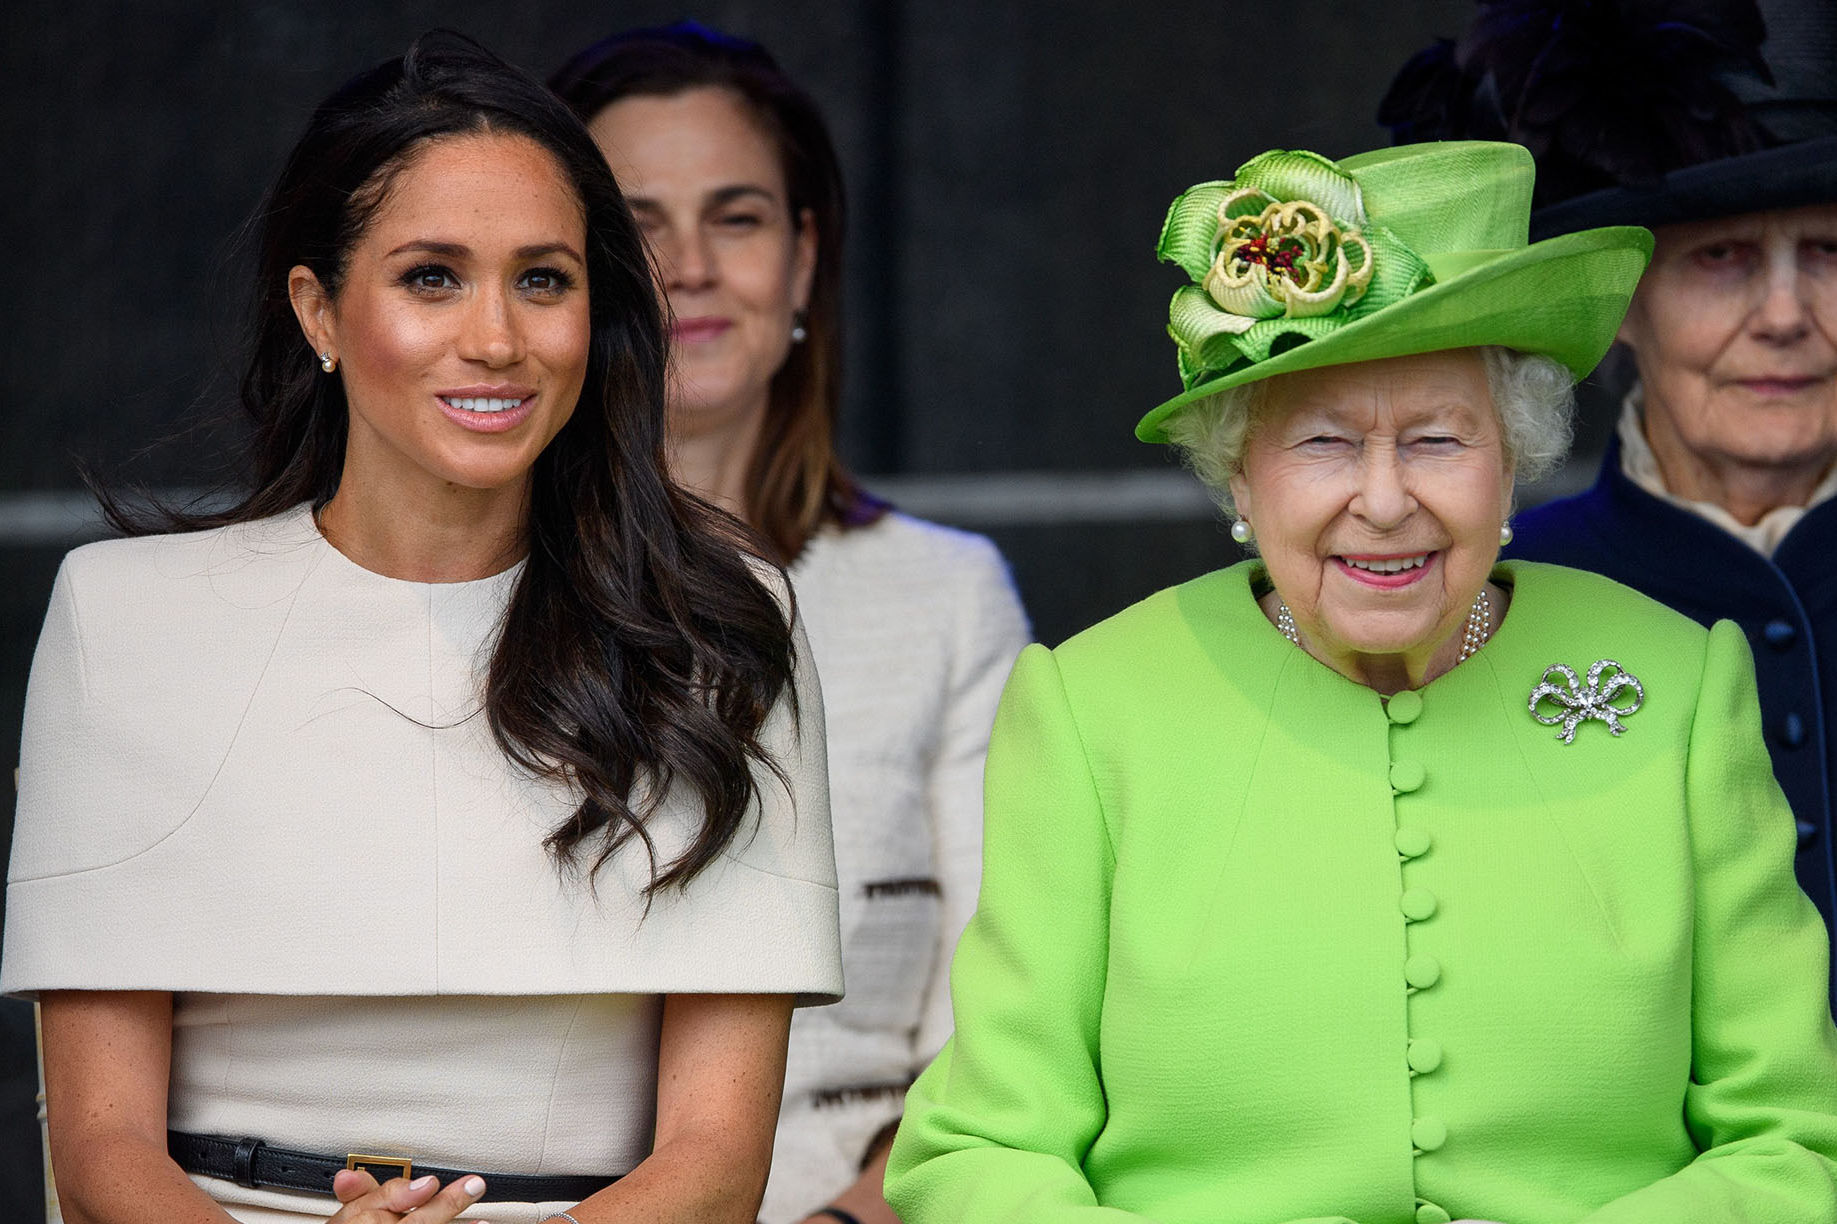 Prince Harry and Meghan Markle Will Have to Change Their Baby's Name if the Queen Doesn't Approve